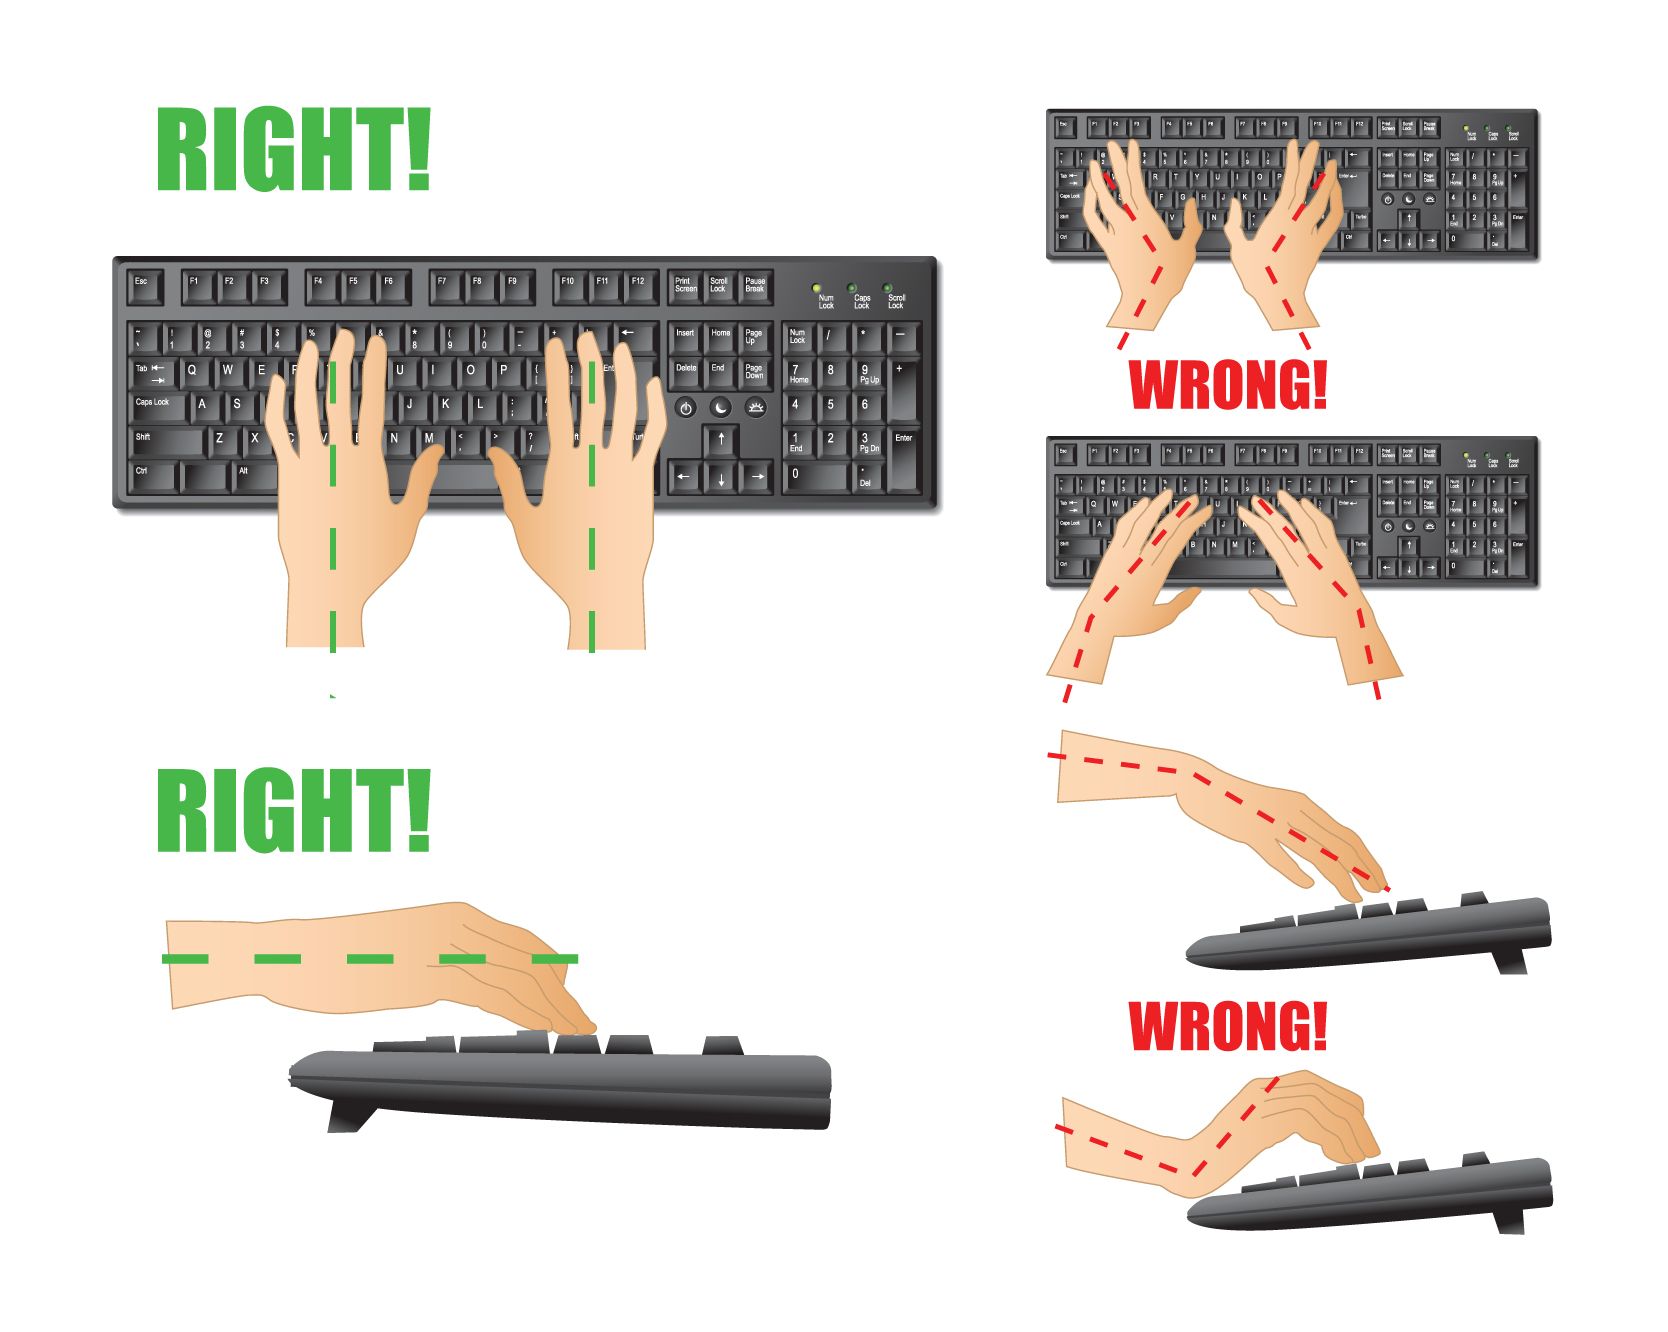 keyboard hand placement